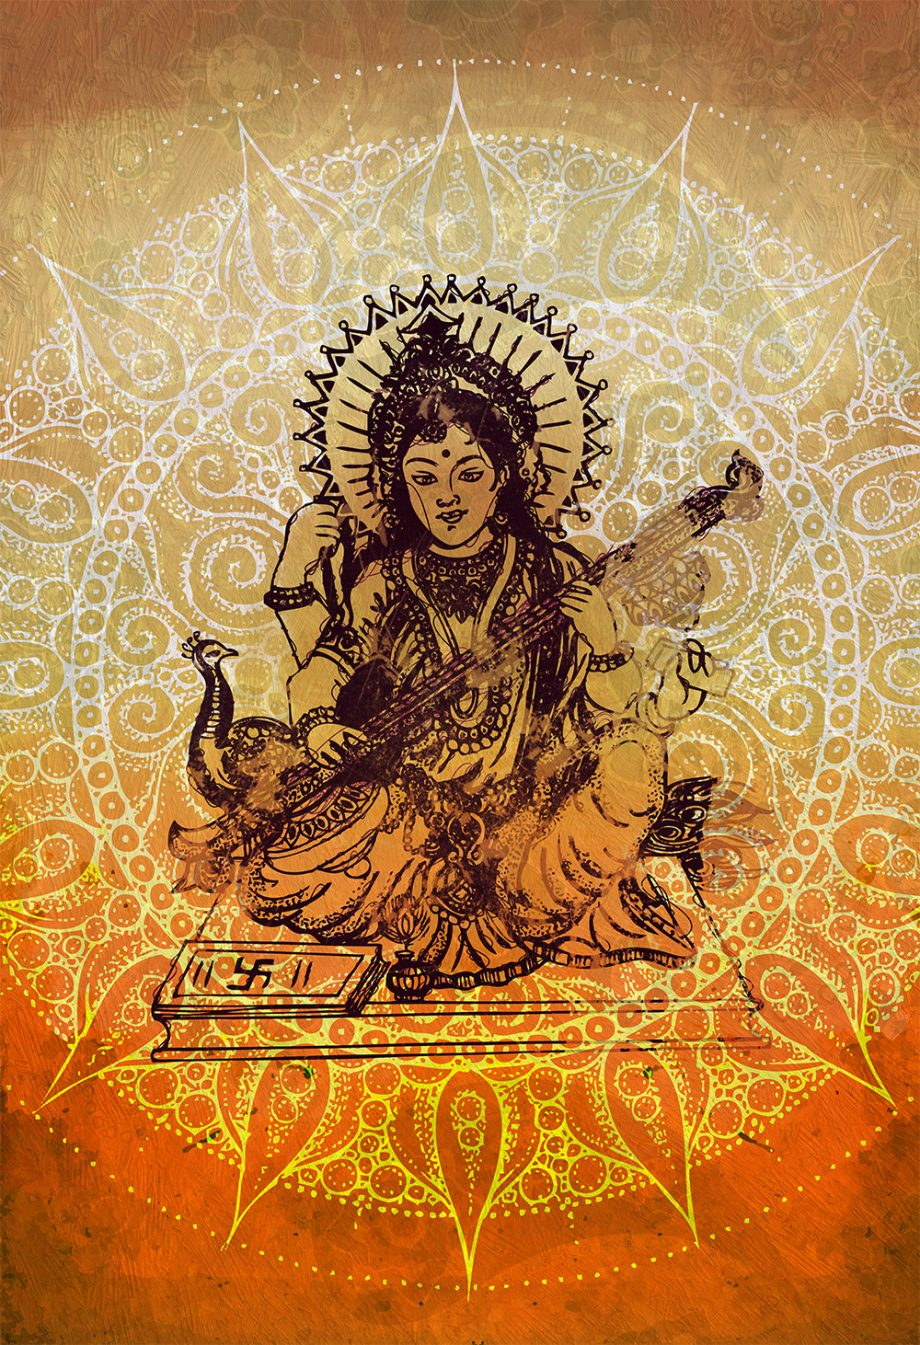 "Hindu Godess Saraswati Print Vintage Hindu Decor Wall Art - Giclee Print 18x24"" 24x36"" - Large Giclee Print on Cotton Canvas and Satin Paper"